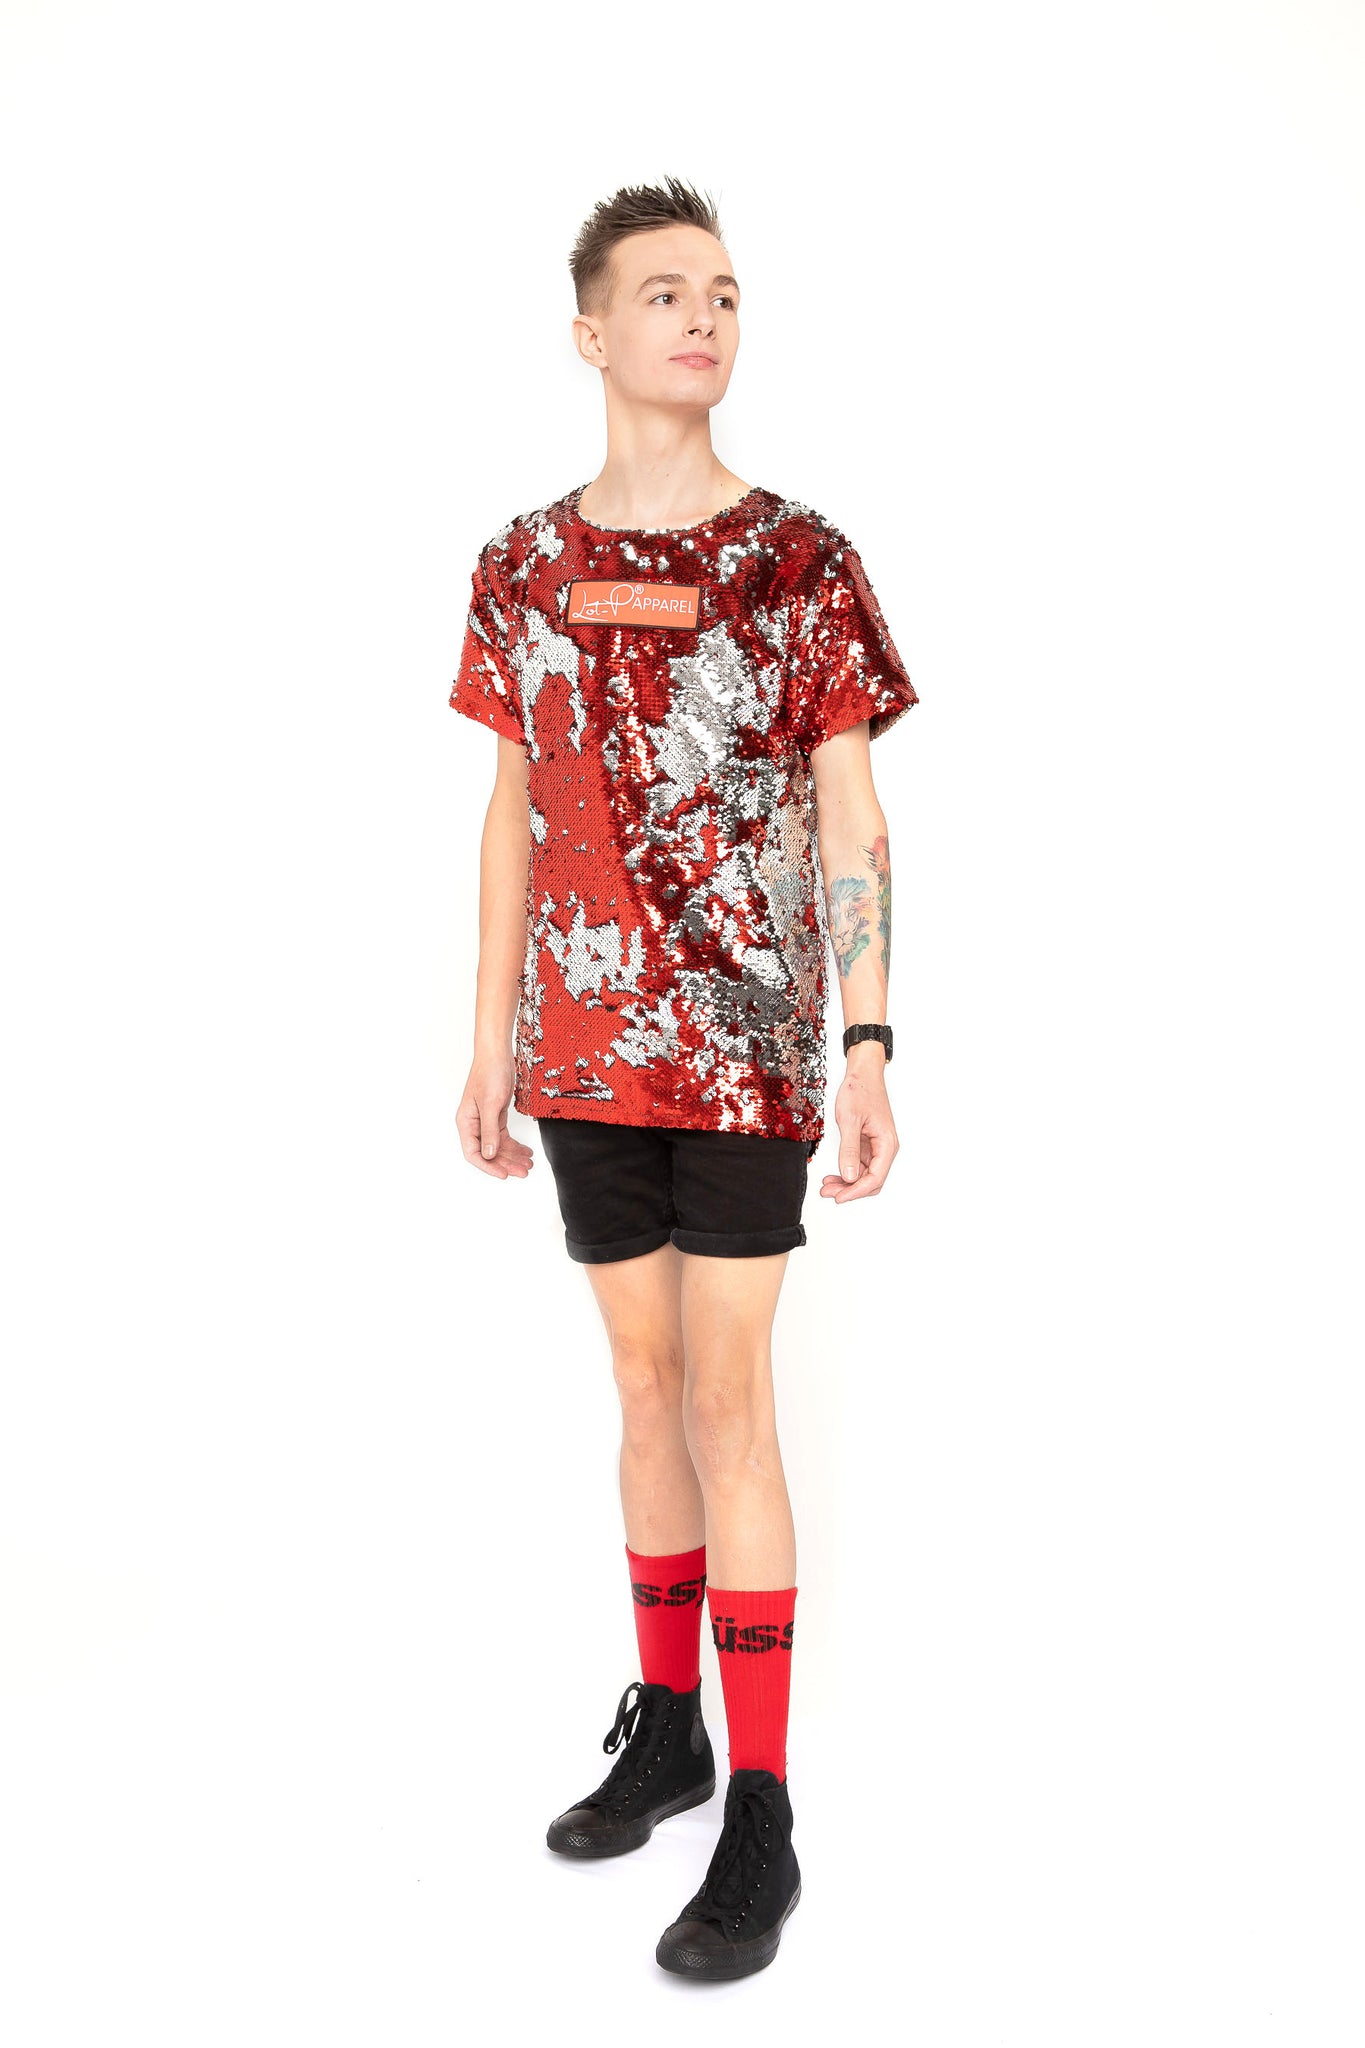 Lot-P Sequin T-shirt - RED / SILVER